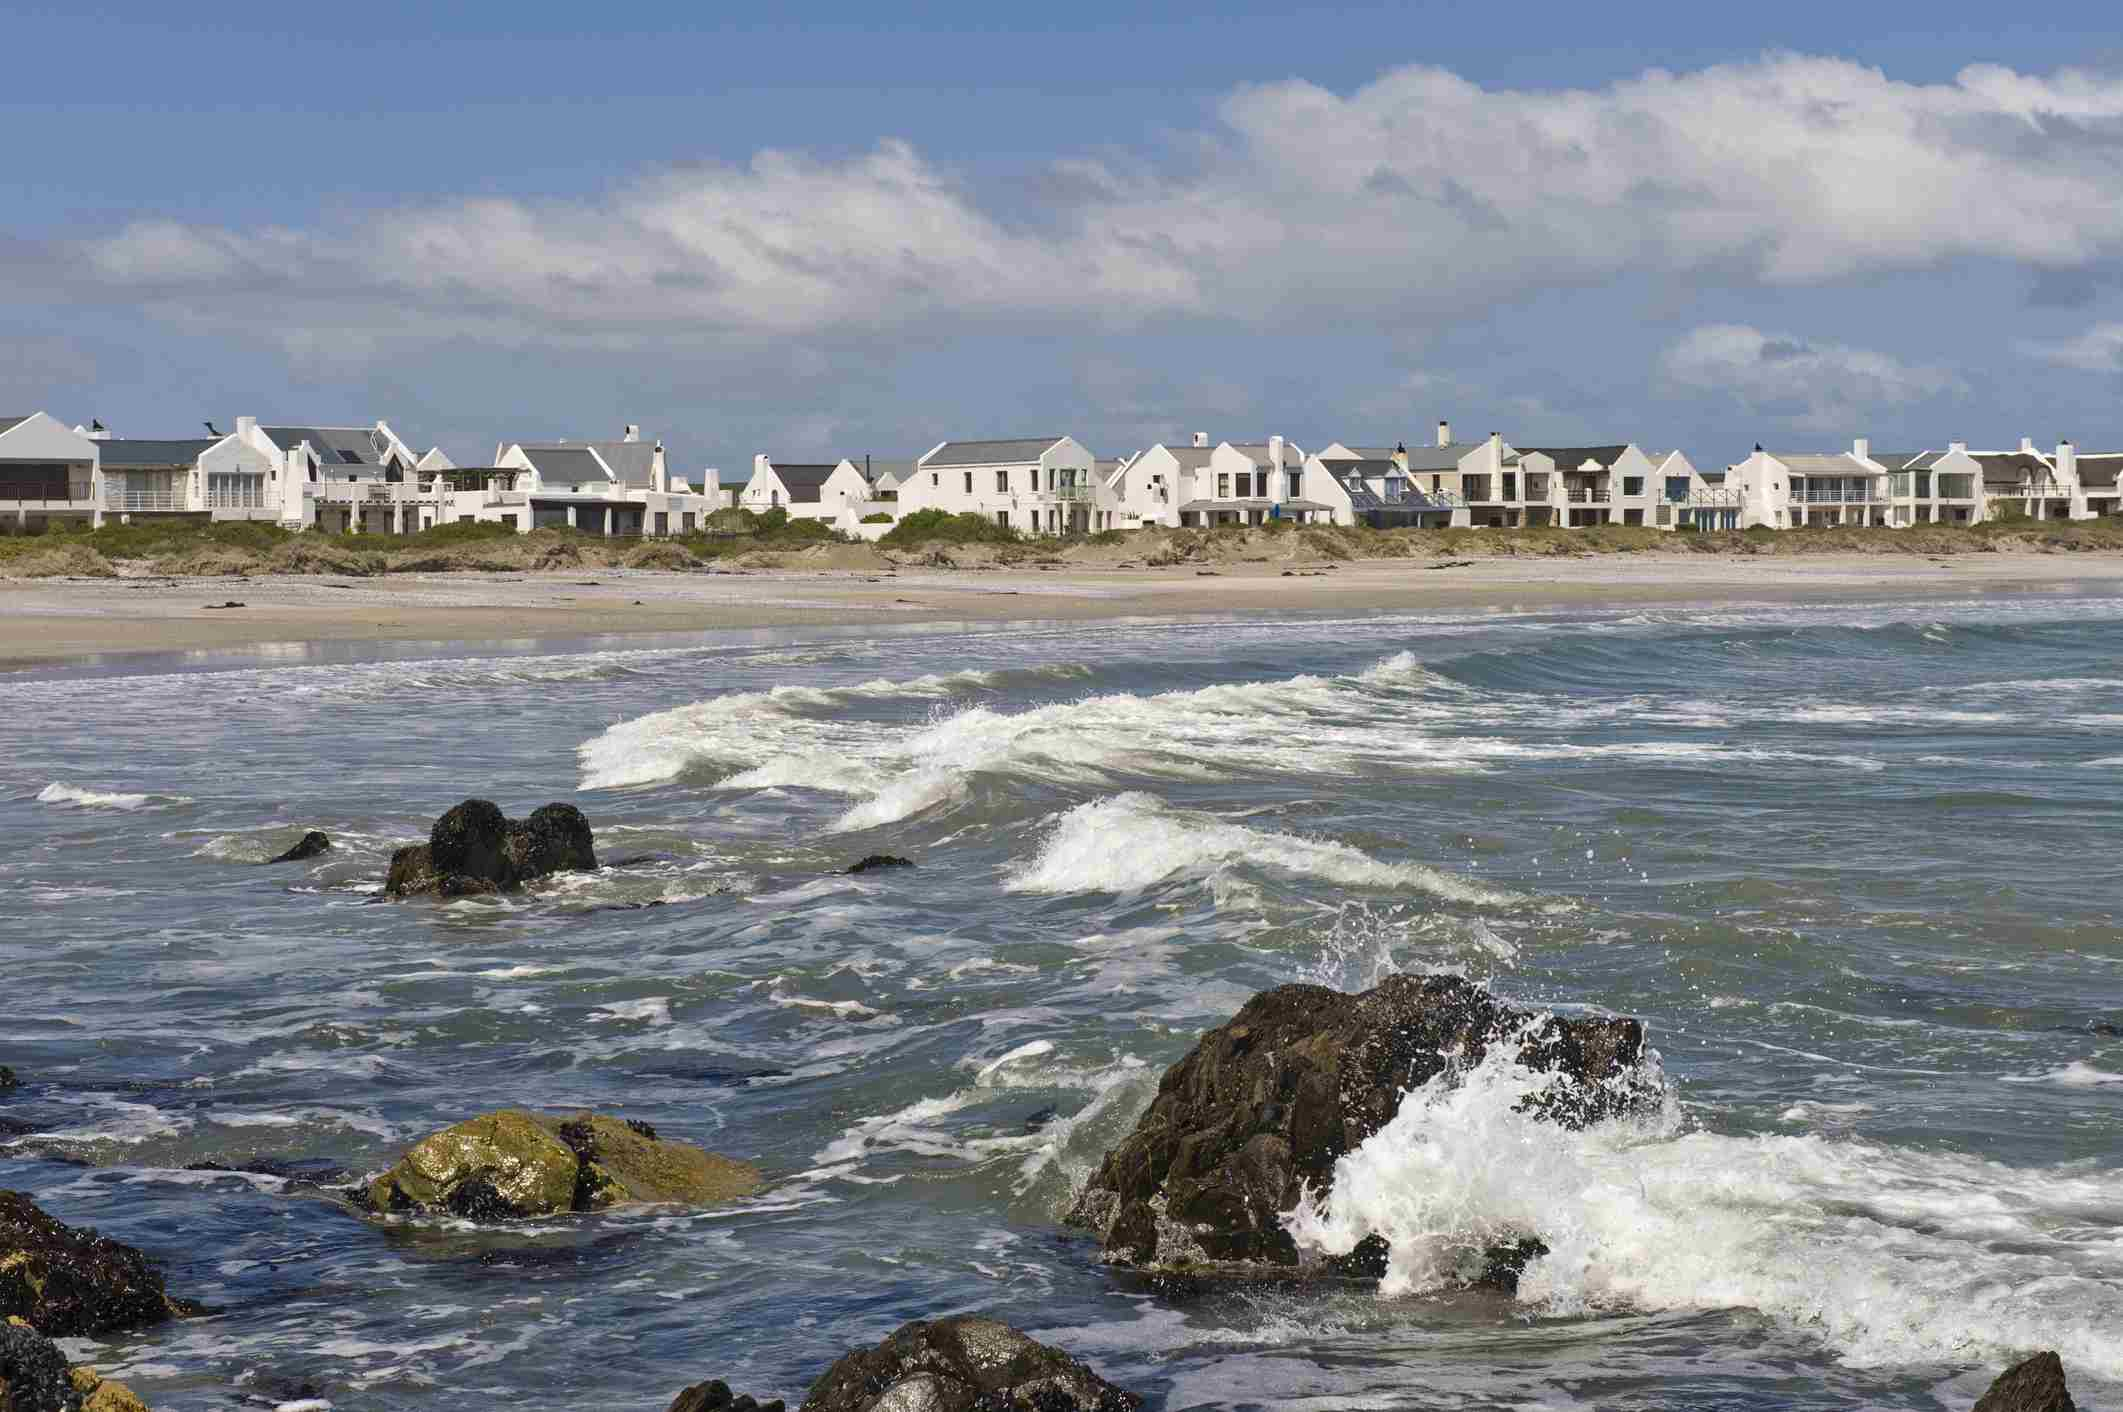 View of Paternoster from the ocean on the Cape West Coast